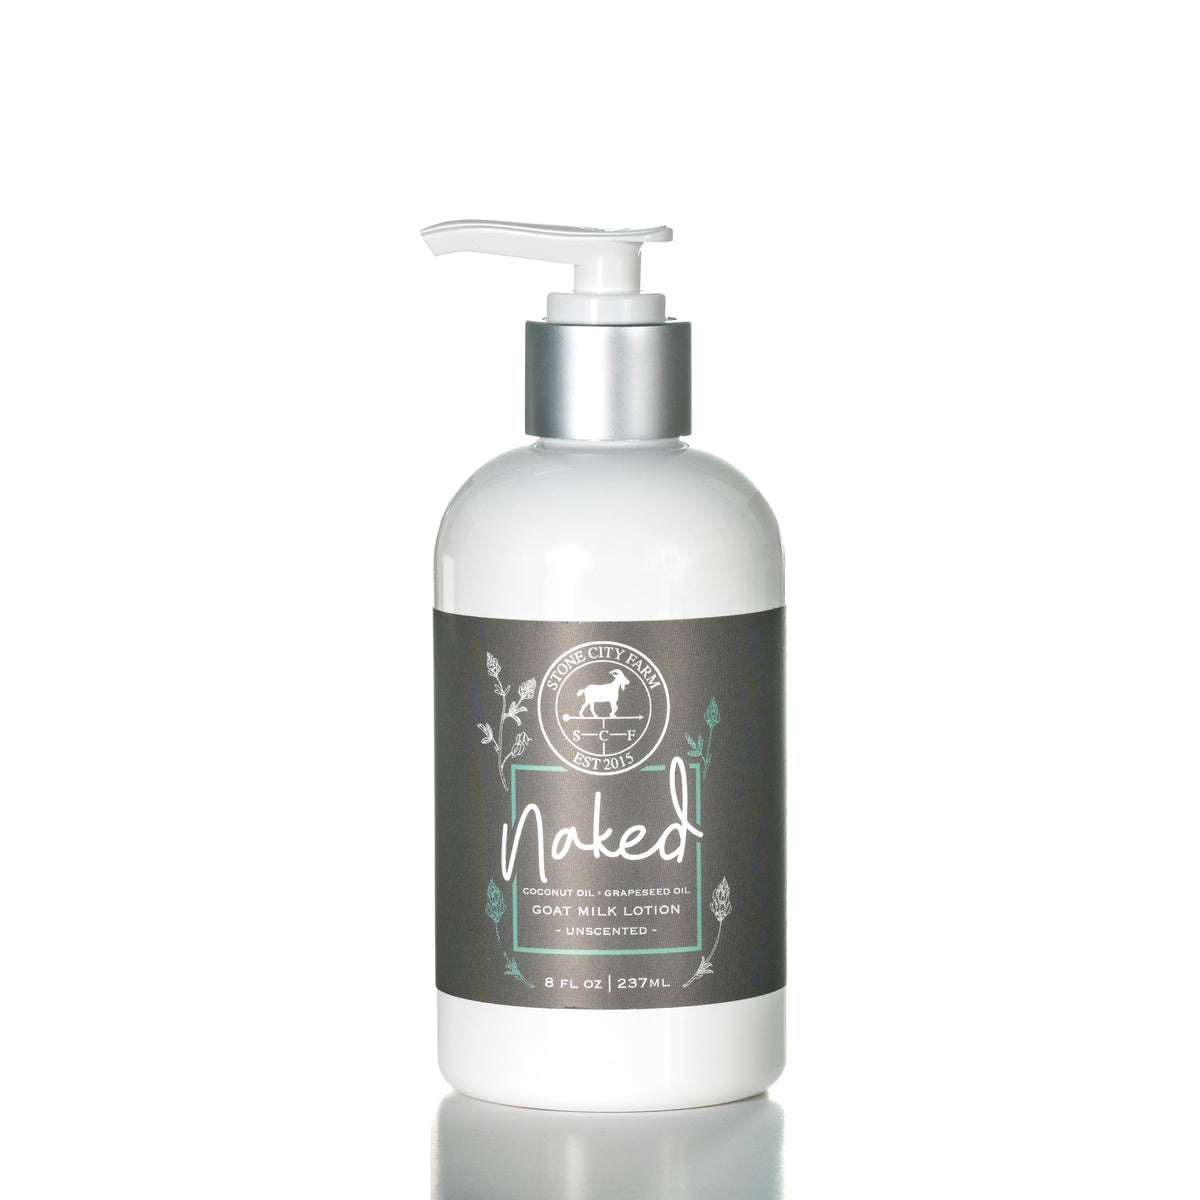 Naked Goat Milk Lotion